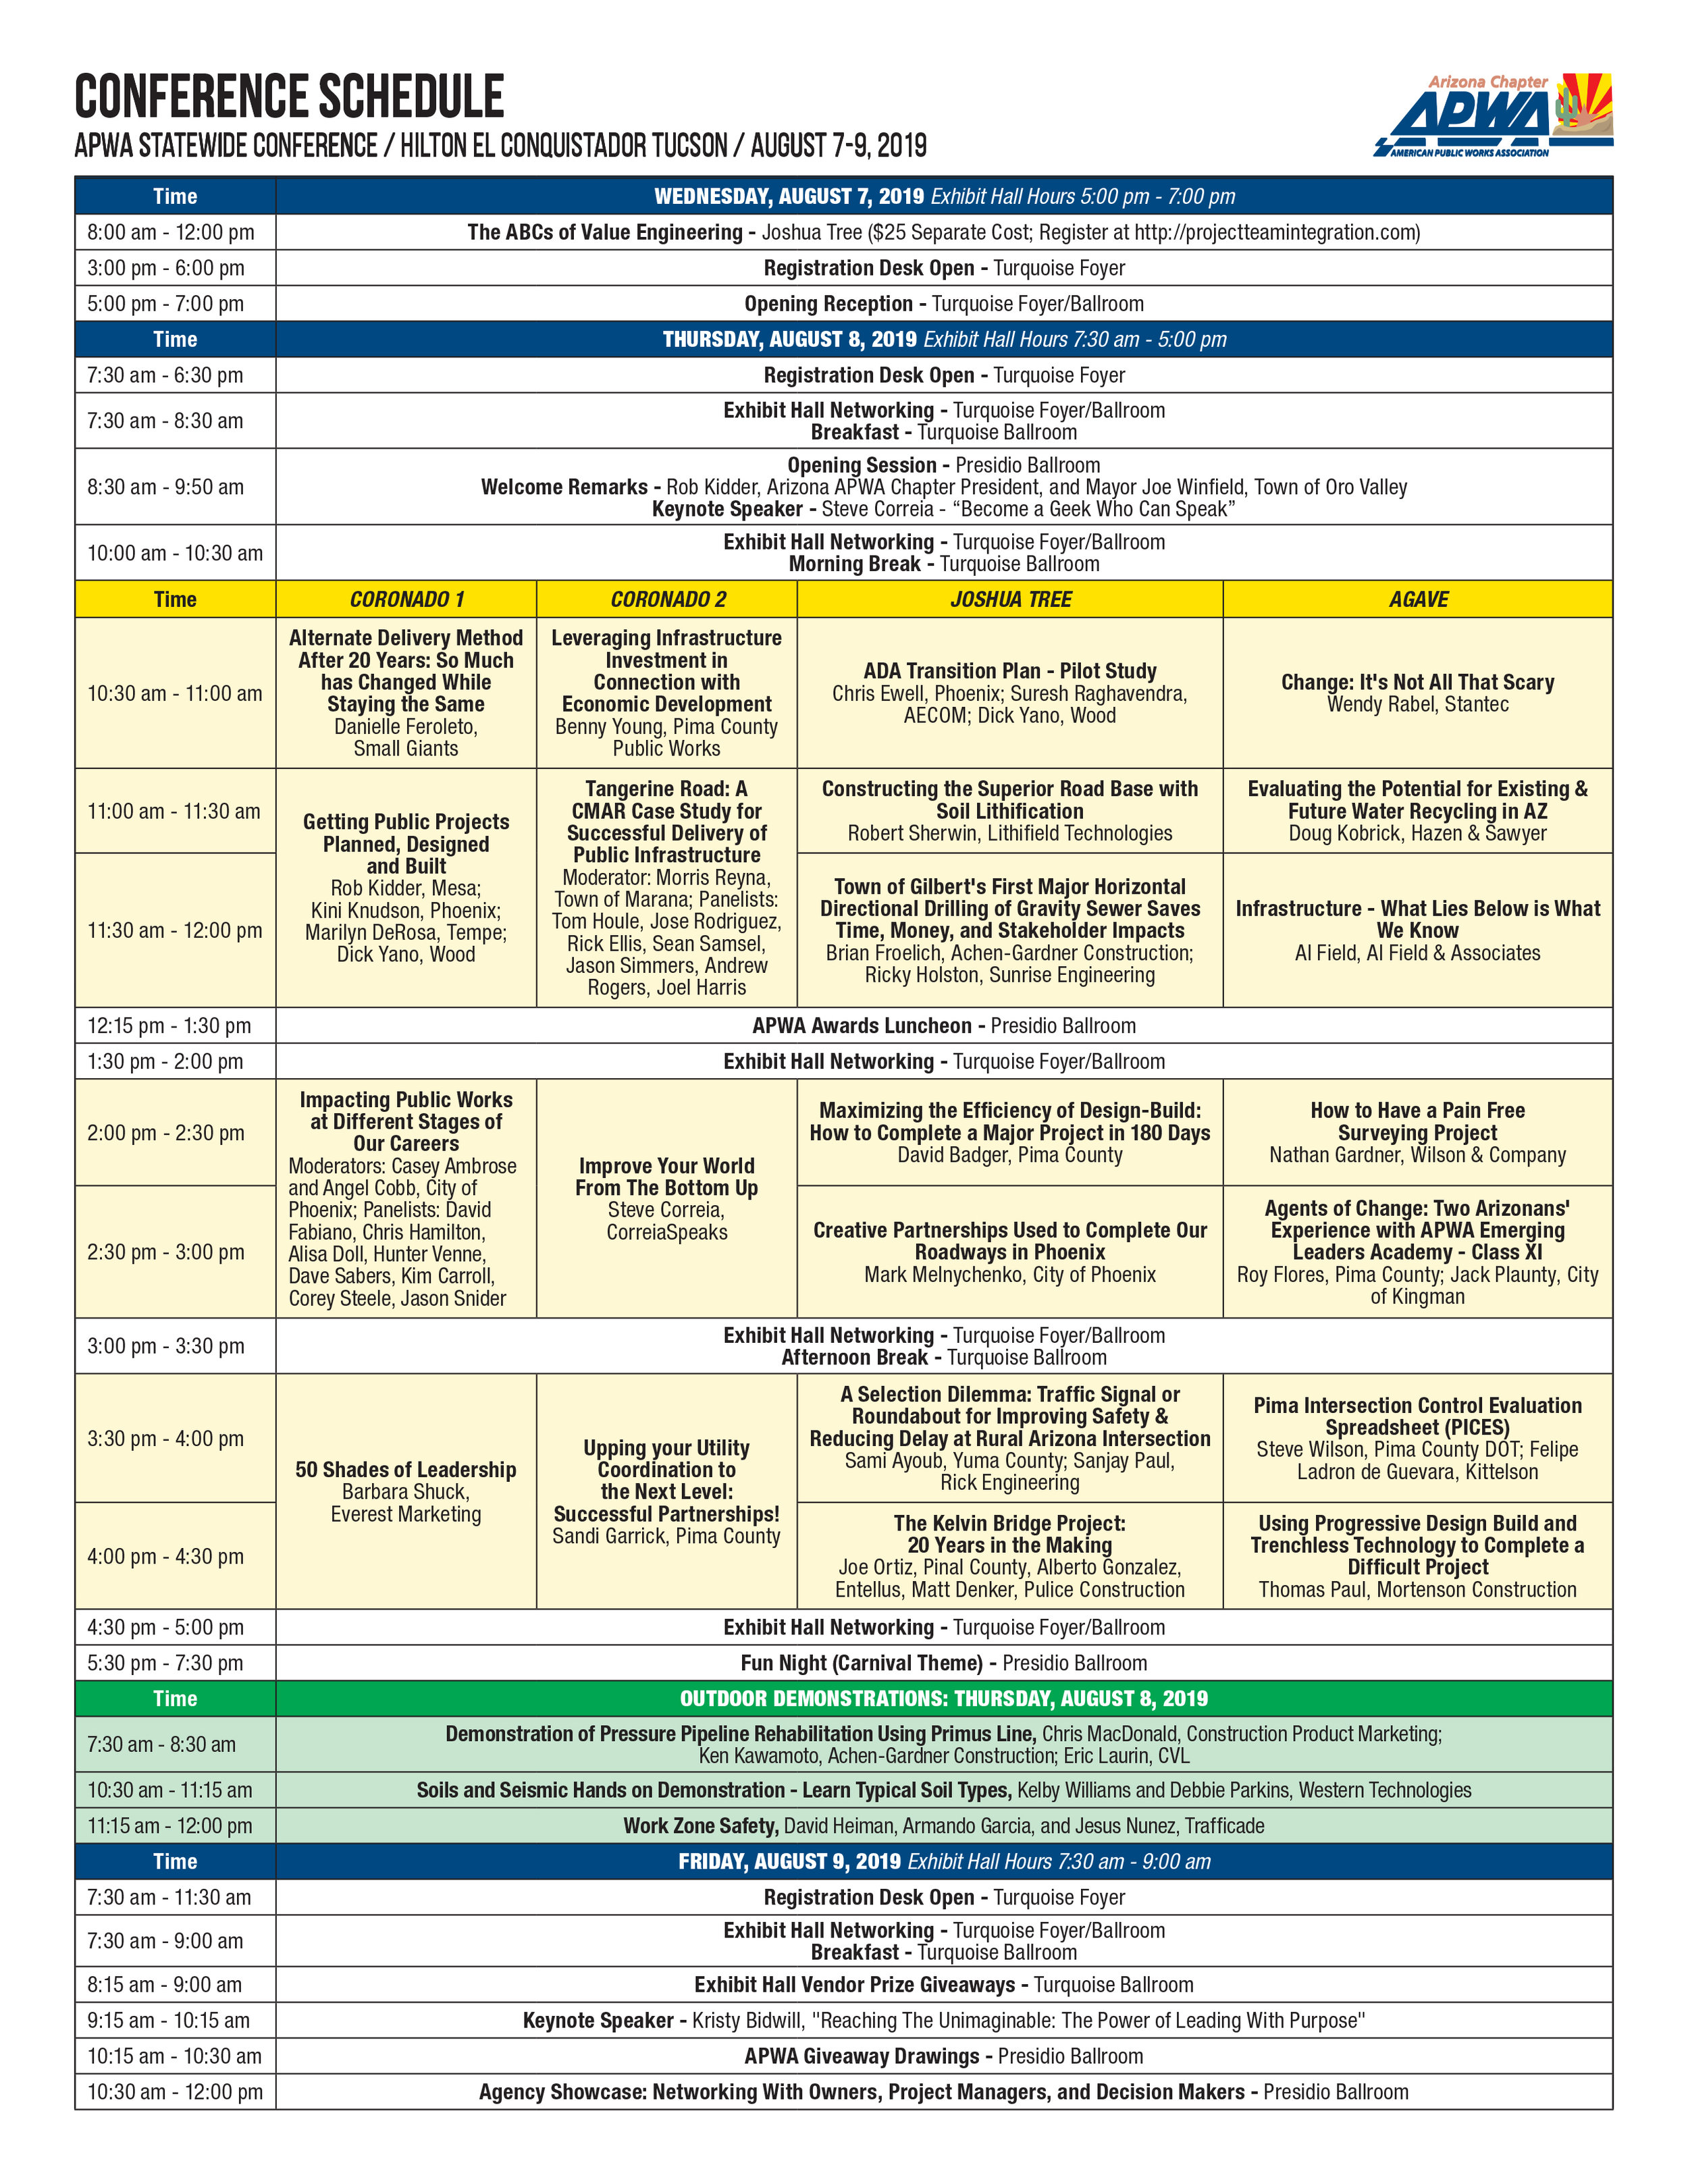 APWA 2019 CONFERENCE SCHEDULE DRAFT 08-05-19.jpg